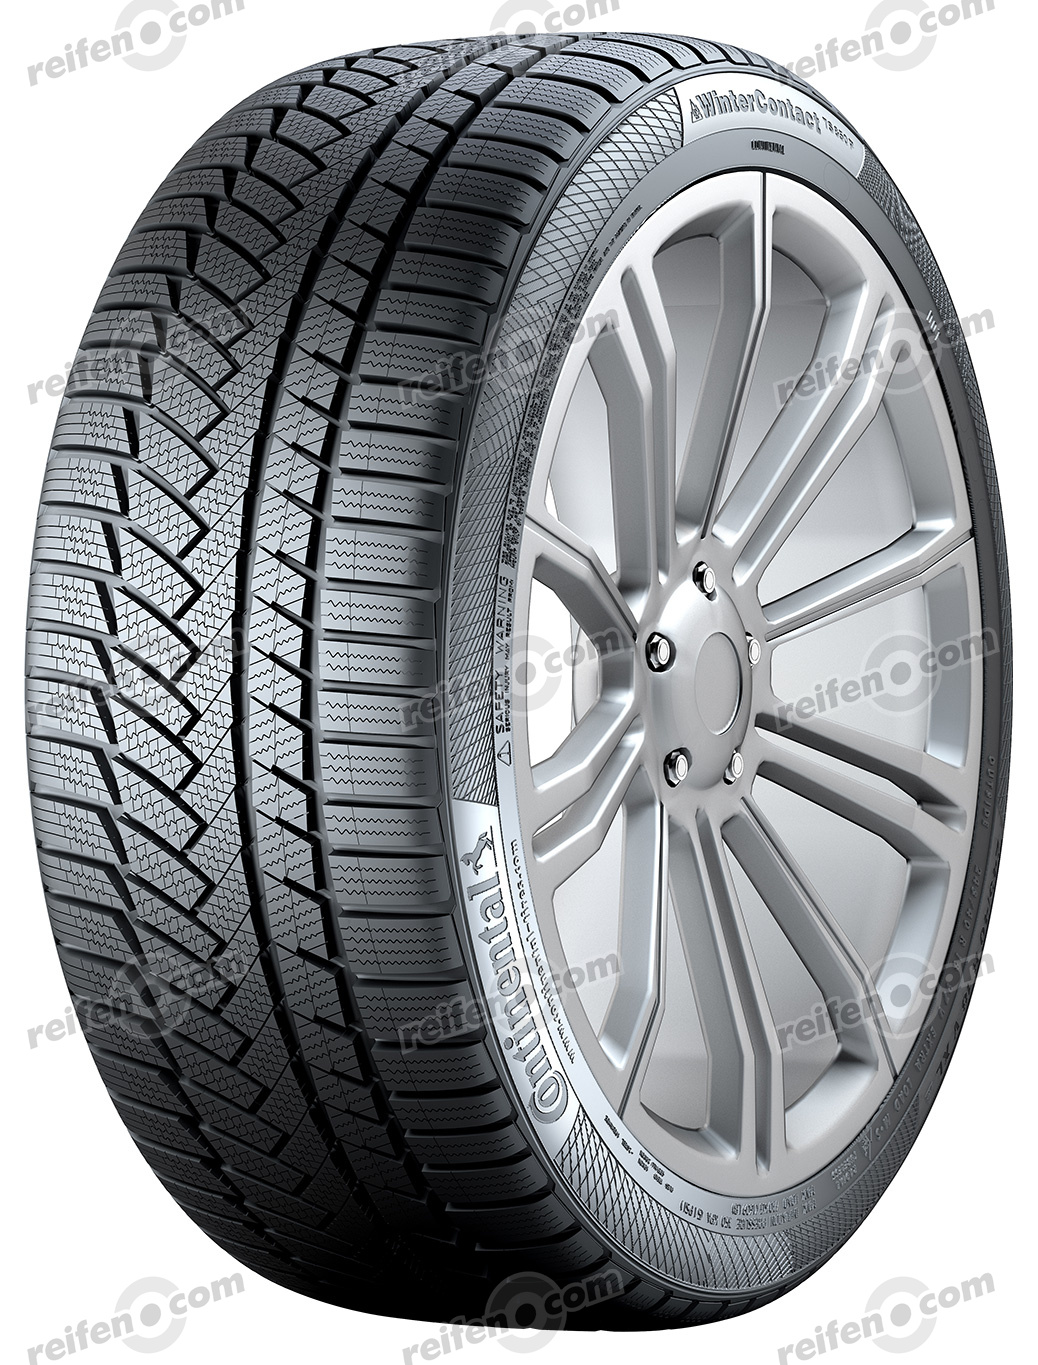 275/55 R19 111H WinterContactTS850 P SUV MO FRM+S  WinterContactTS850 P SUV MO FRM+S